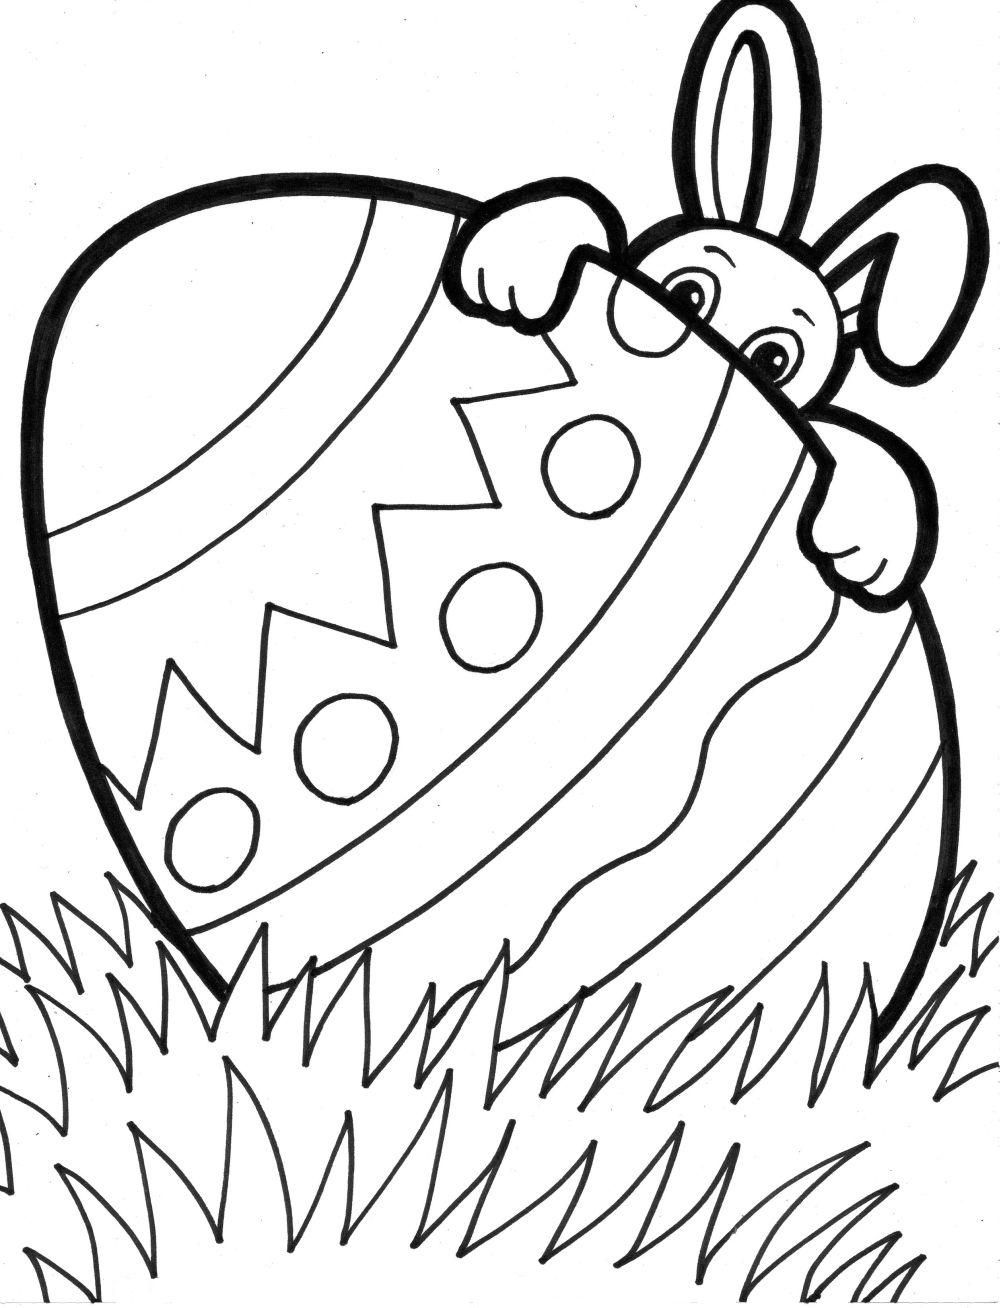 coloring pitchers : 16 Super Cute And Free Easter Printable Coloring Pages For Kids